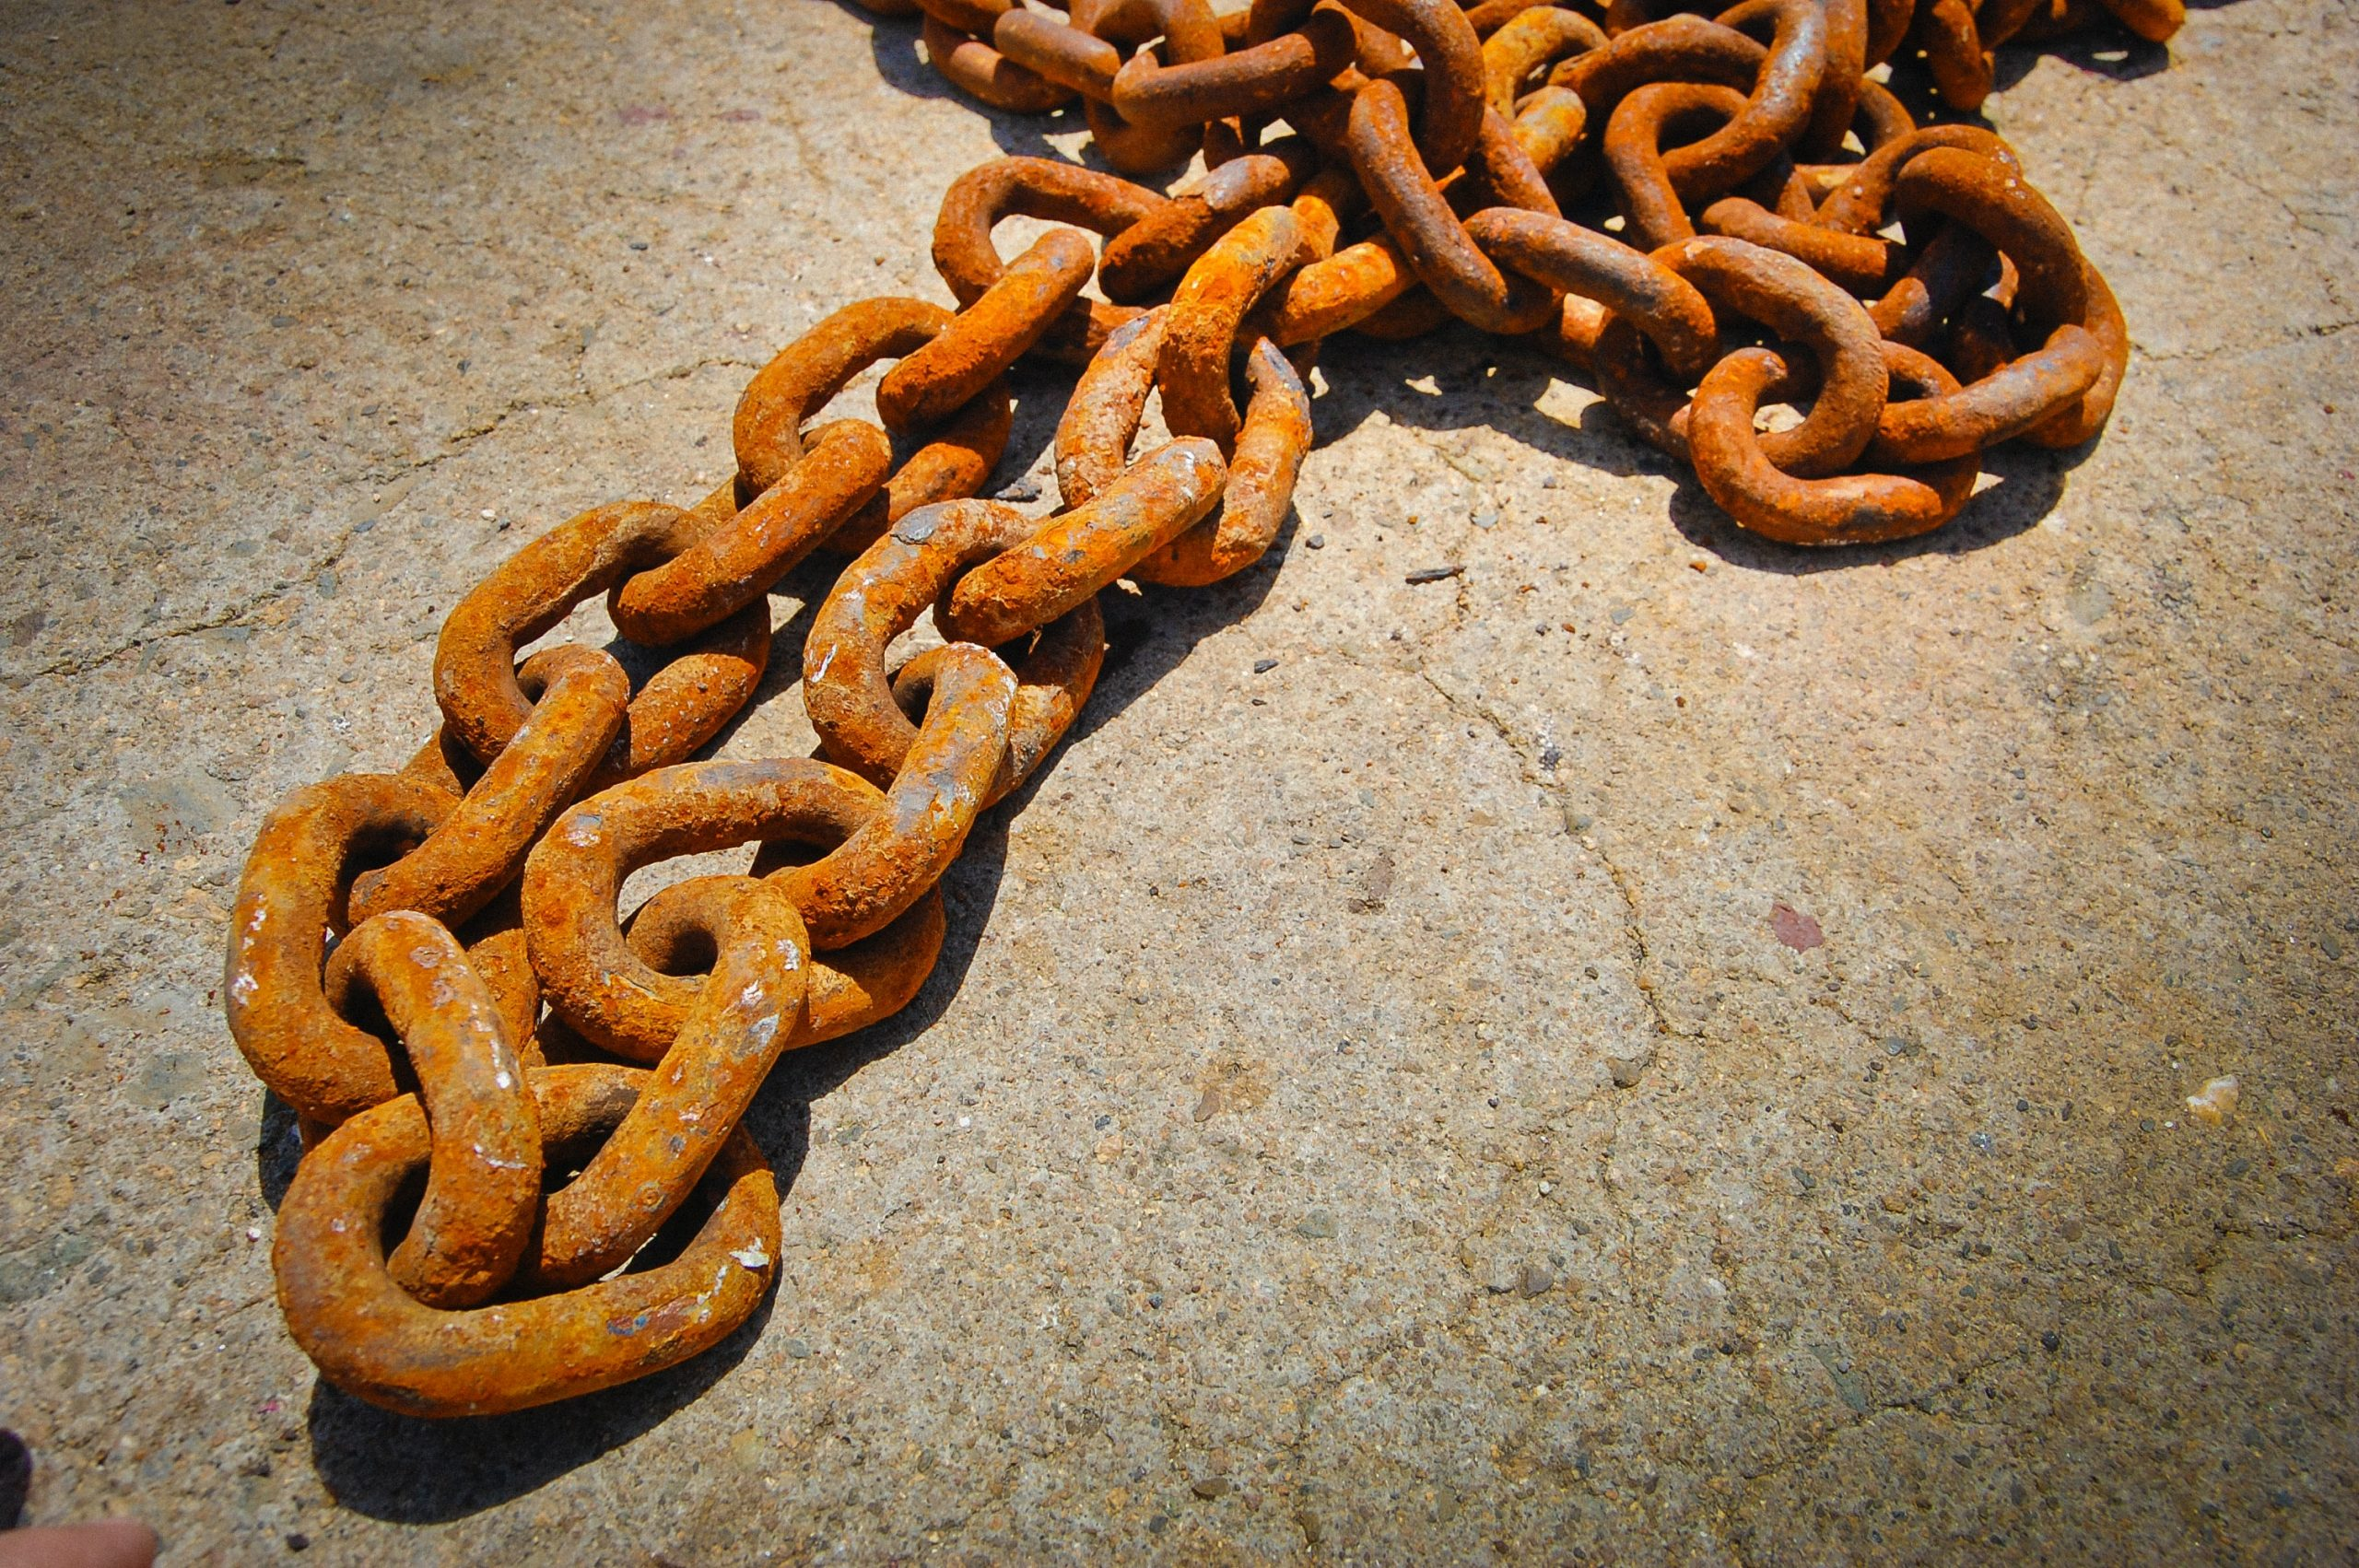 Take Away This Ball and Chain: Untethering from the Computer